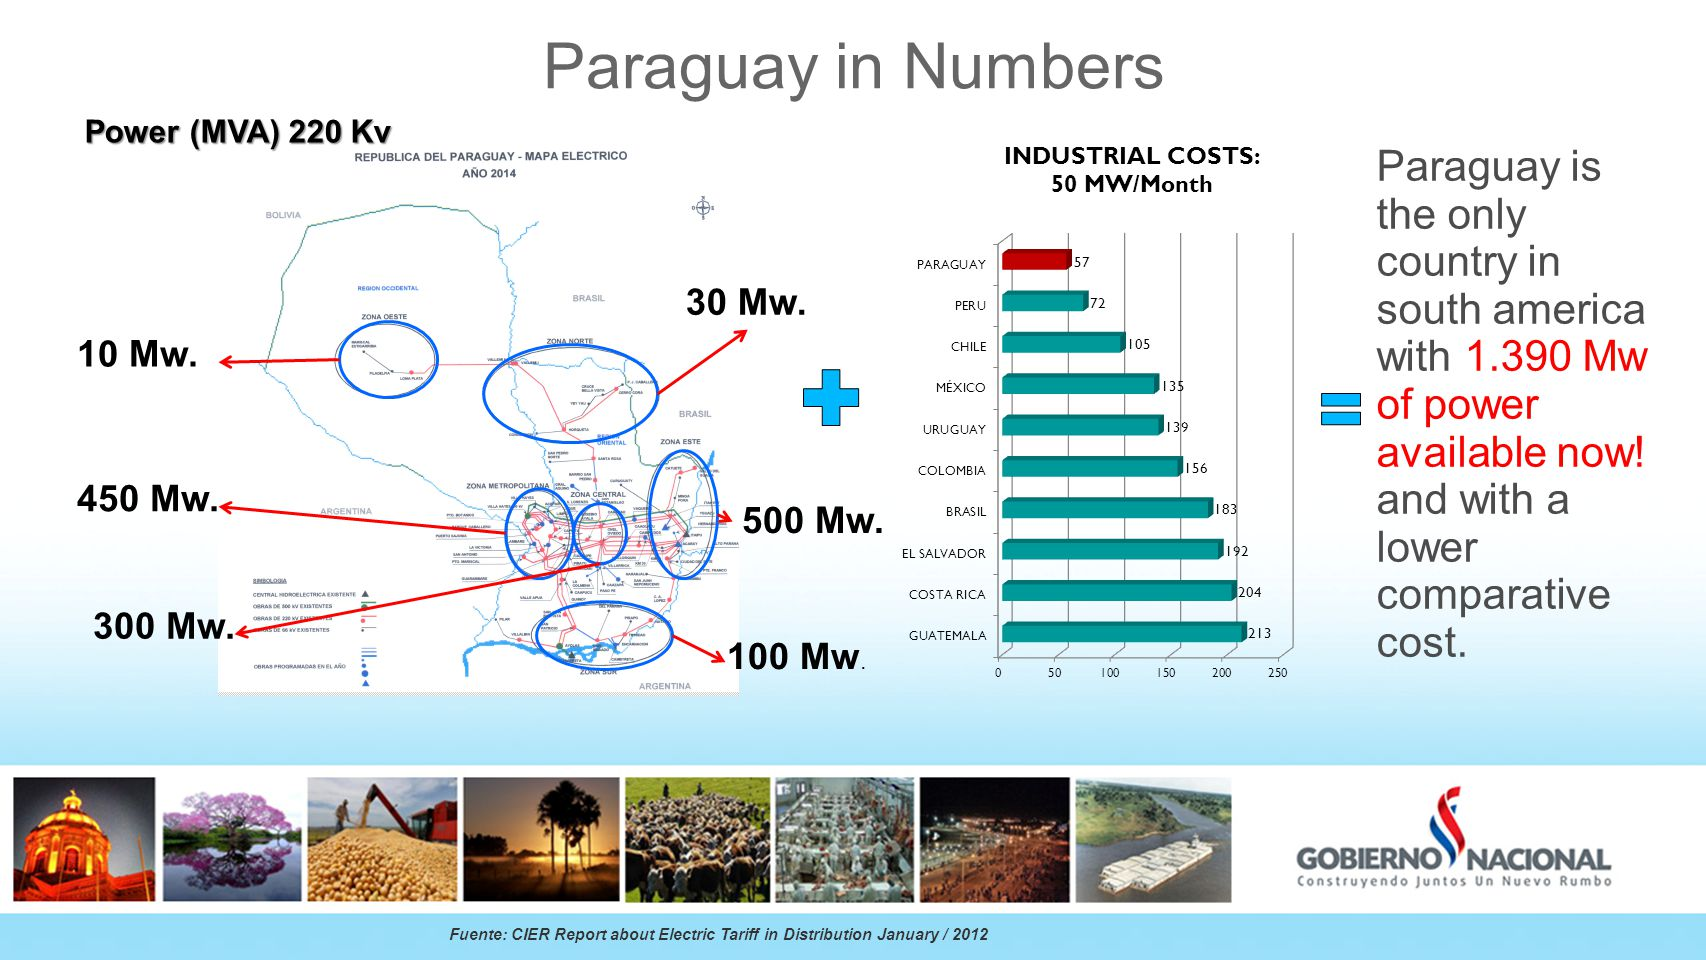 Paraguay in Numbers Paraguay is the only country in south america with 1.390 Mw of power available now.